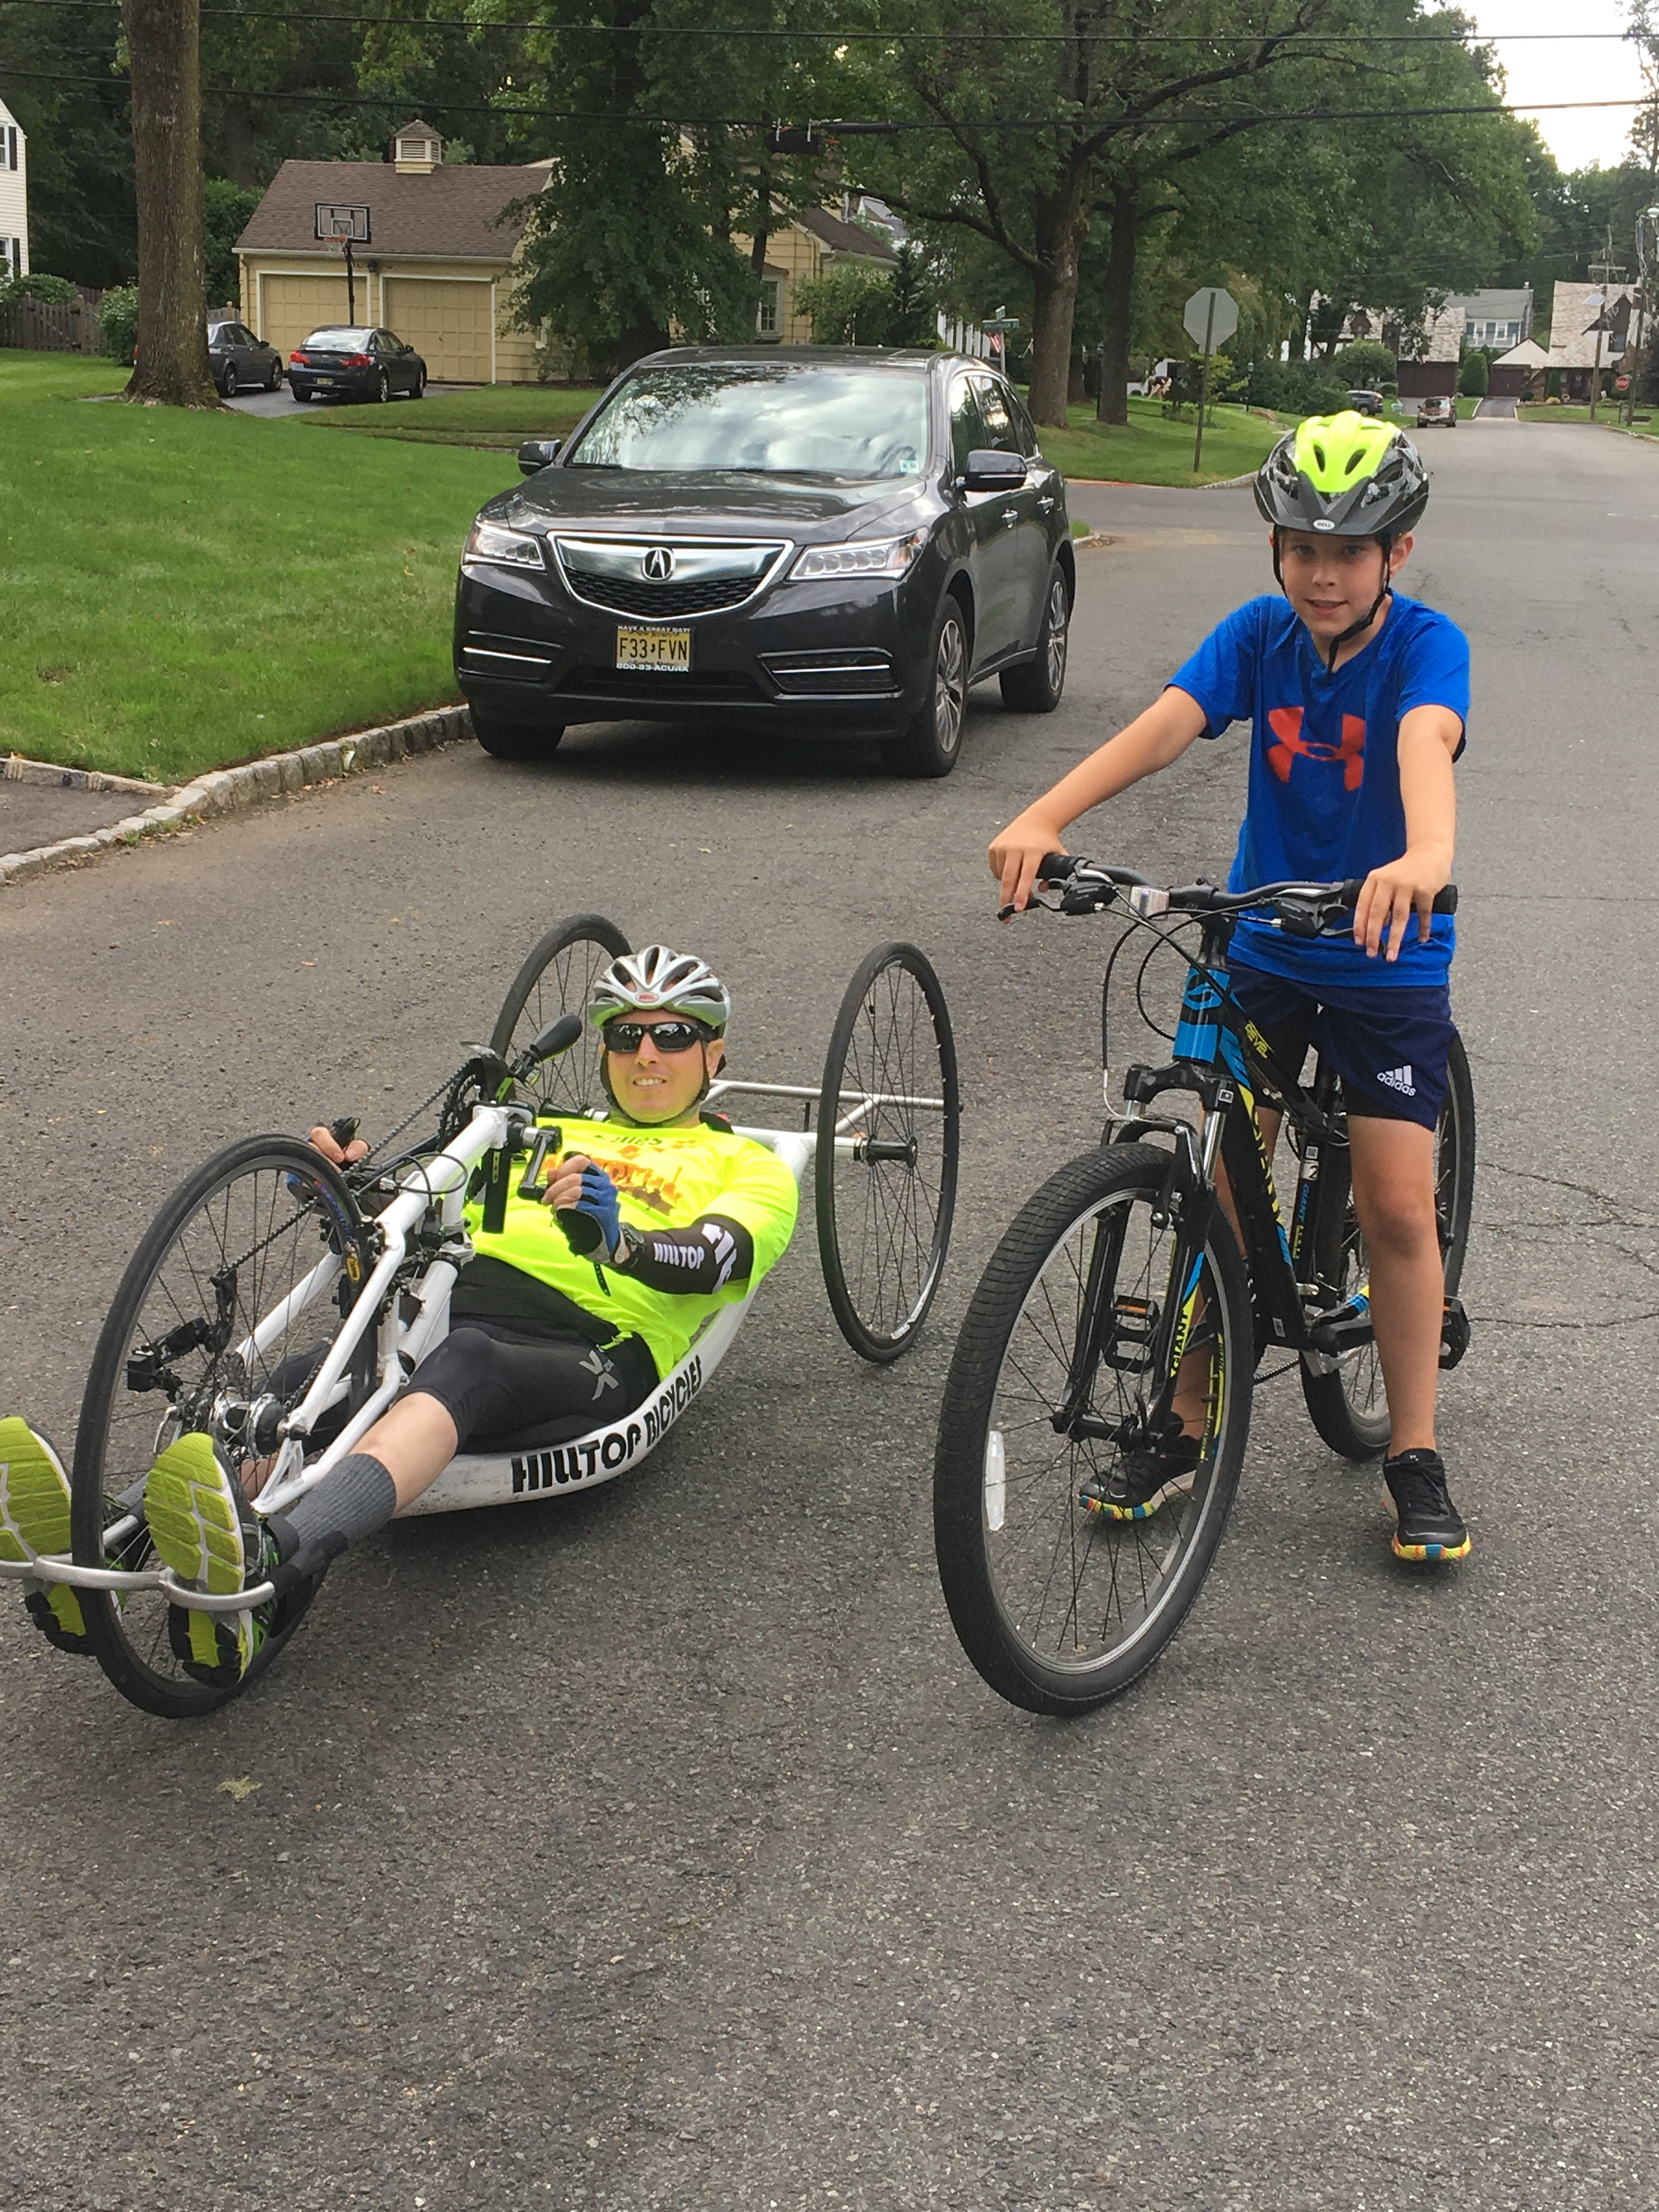 Dennis and Declan riding